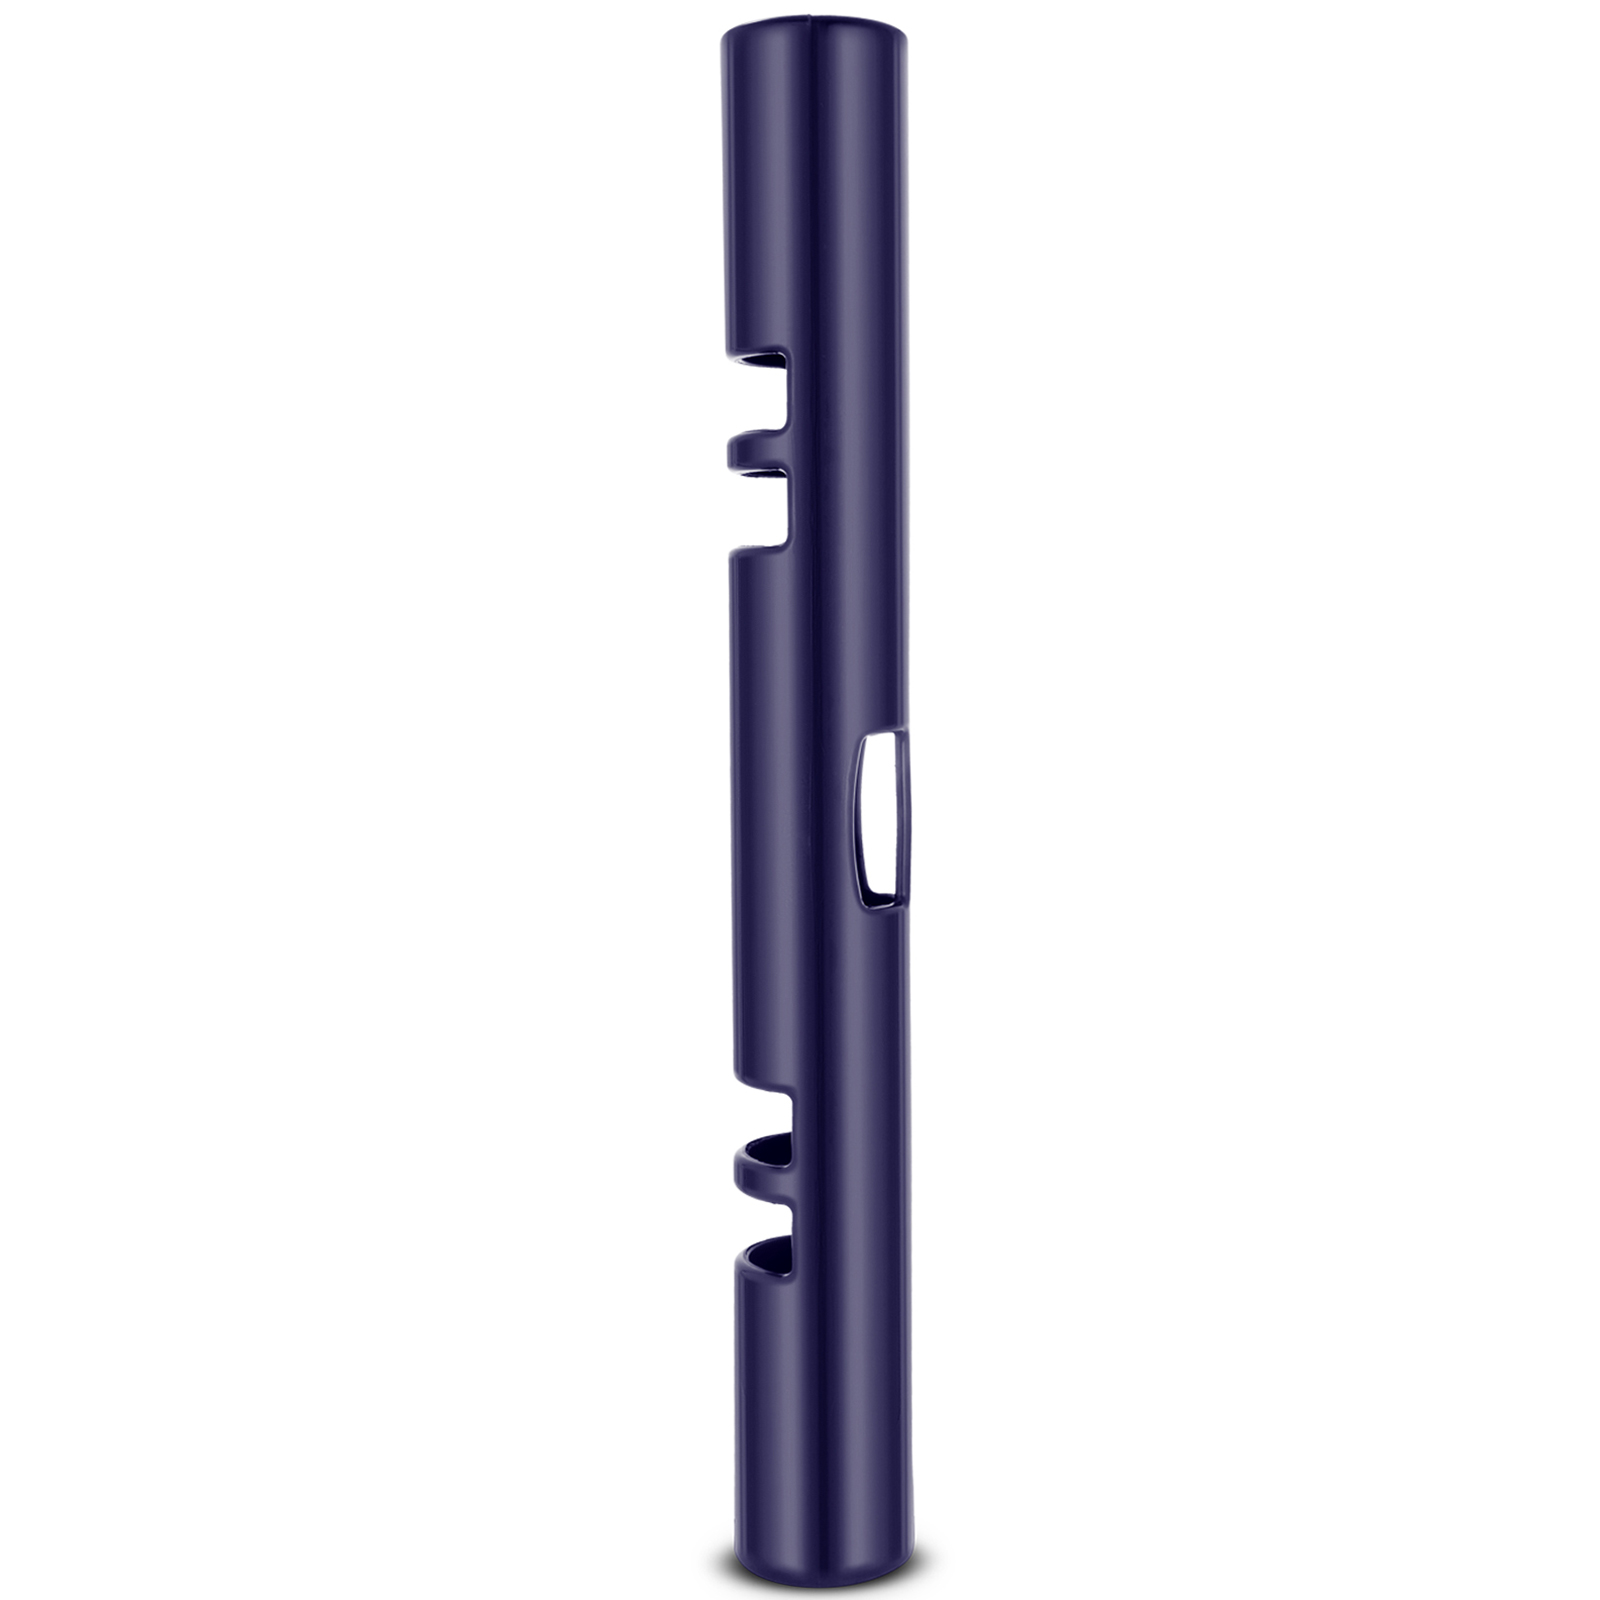 Vipr-Fitpro-Fitness-Tube-Loaded-Movement-Training-weightlifting-4-6-8-10-12-Kg thumbnail 143